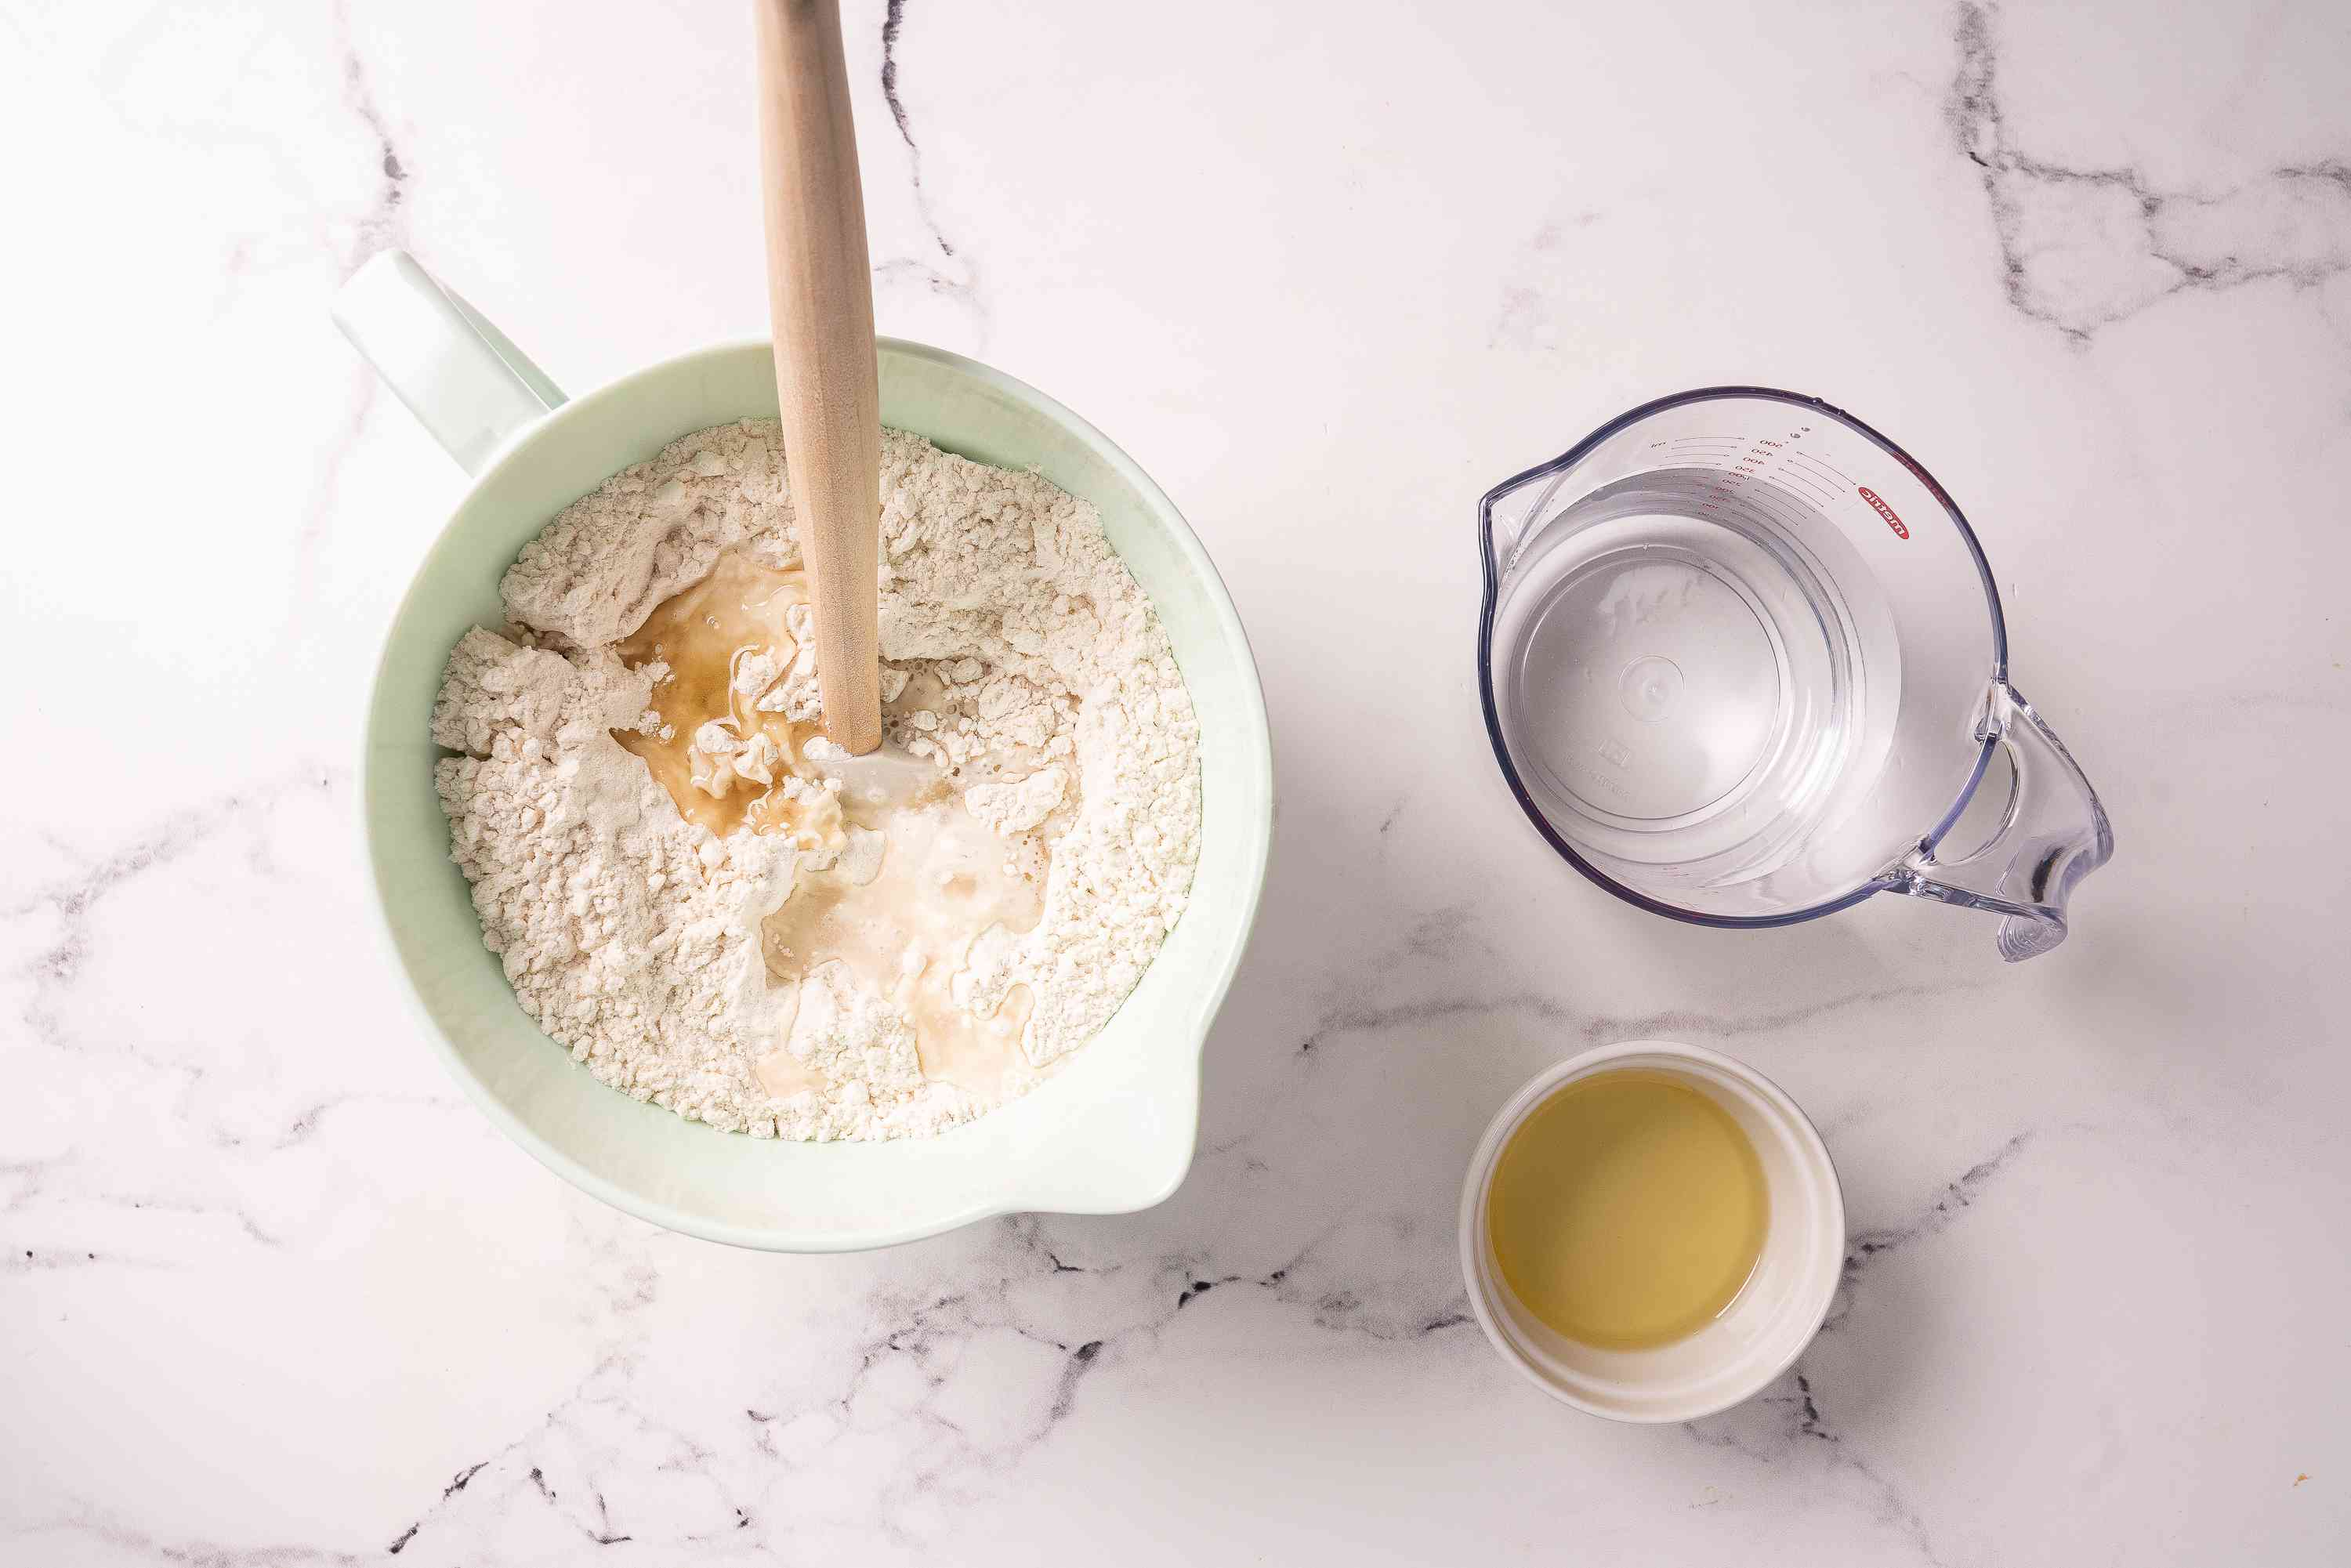 Flour and liquid ingredients mixed in a bowl